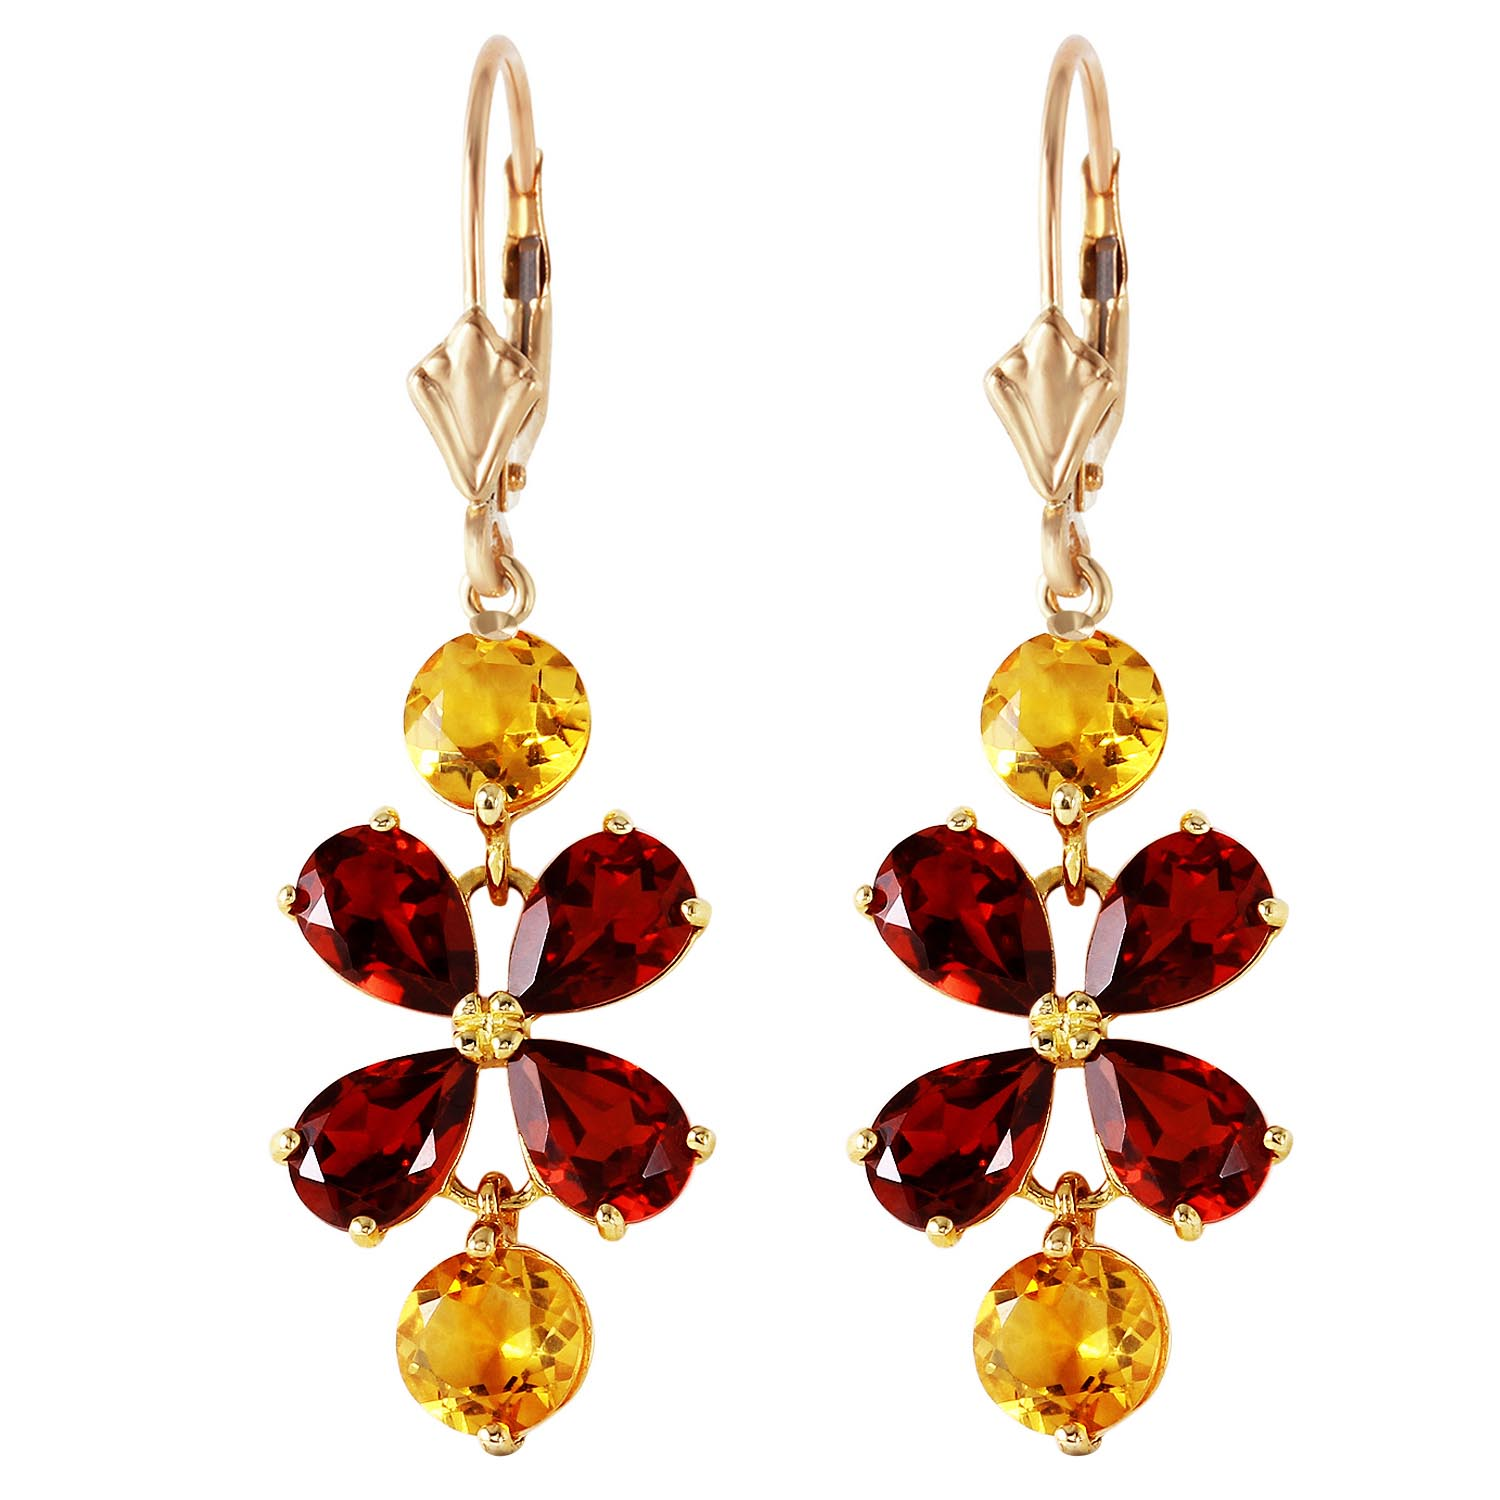 Garnet and Citrine Blossom Drop Earrings 5.32ctw in 9ct Gold